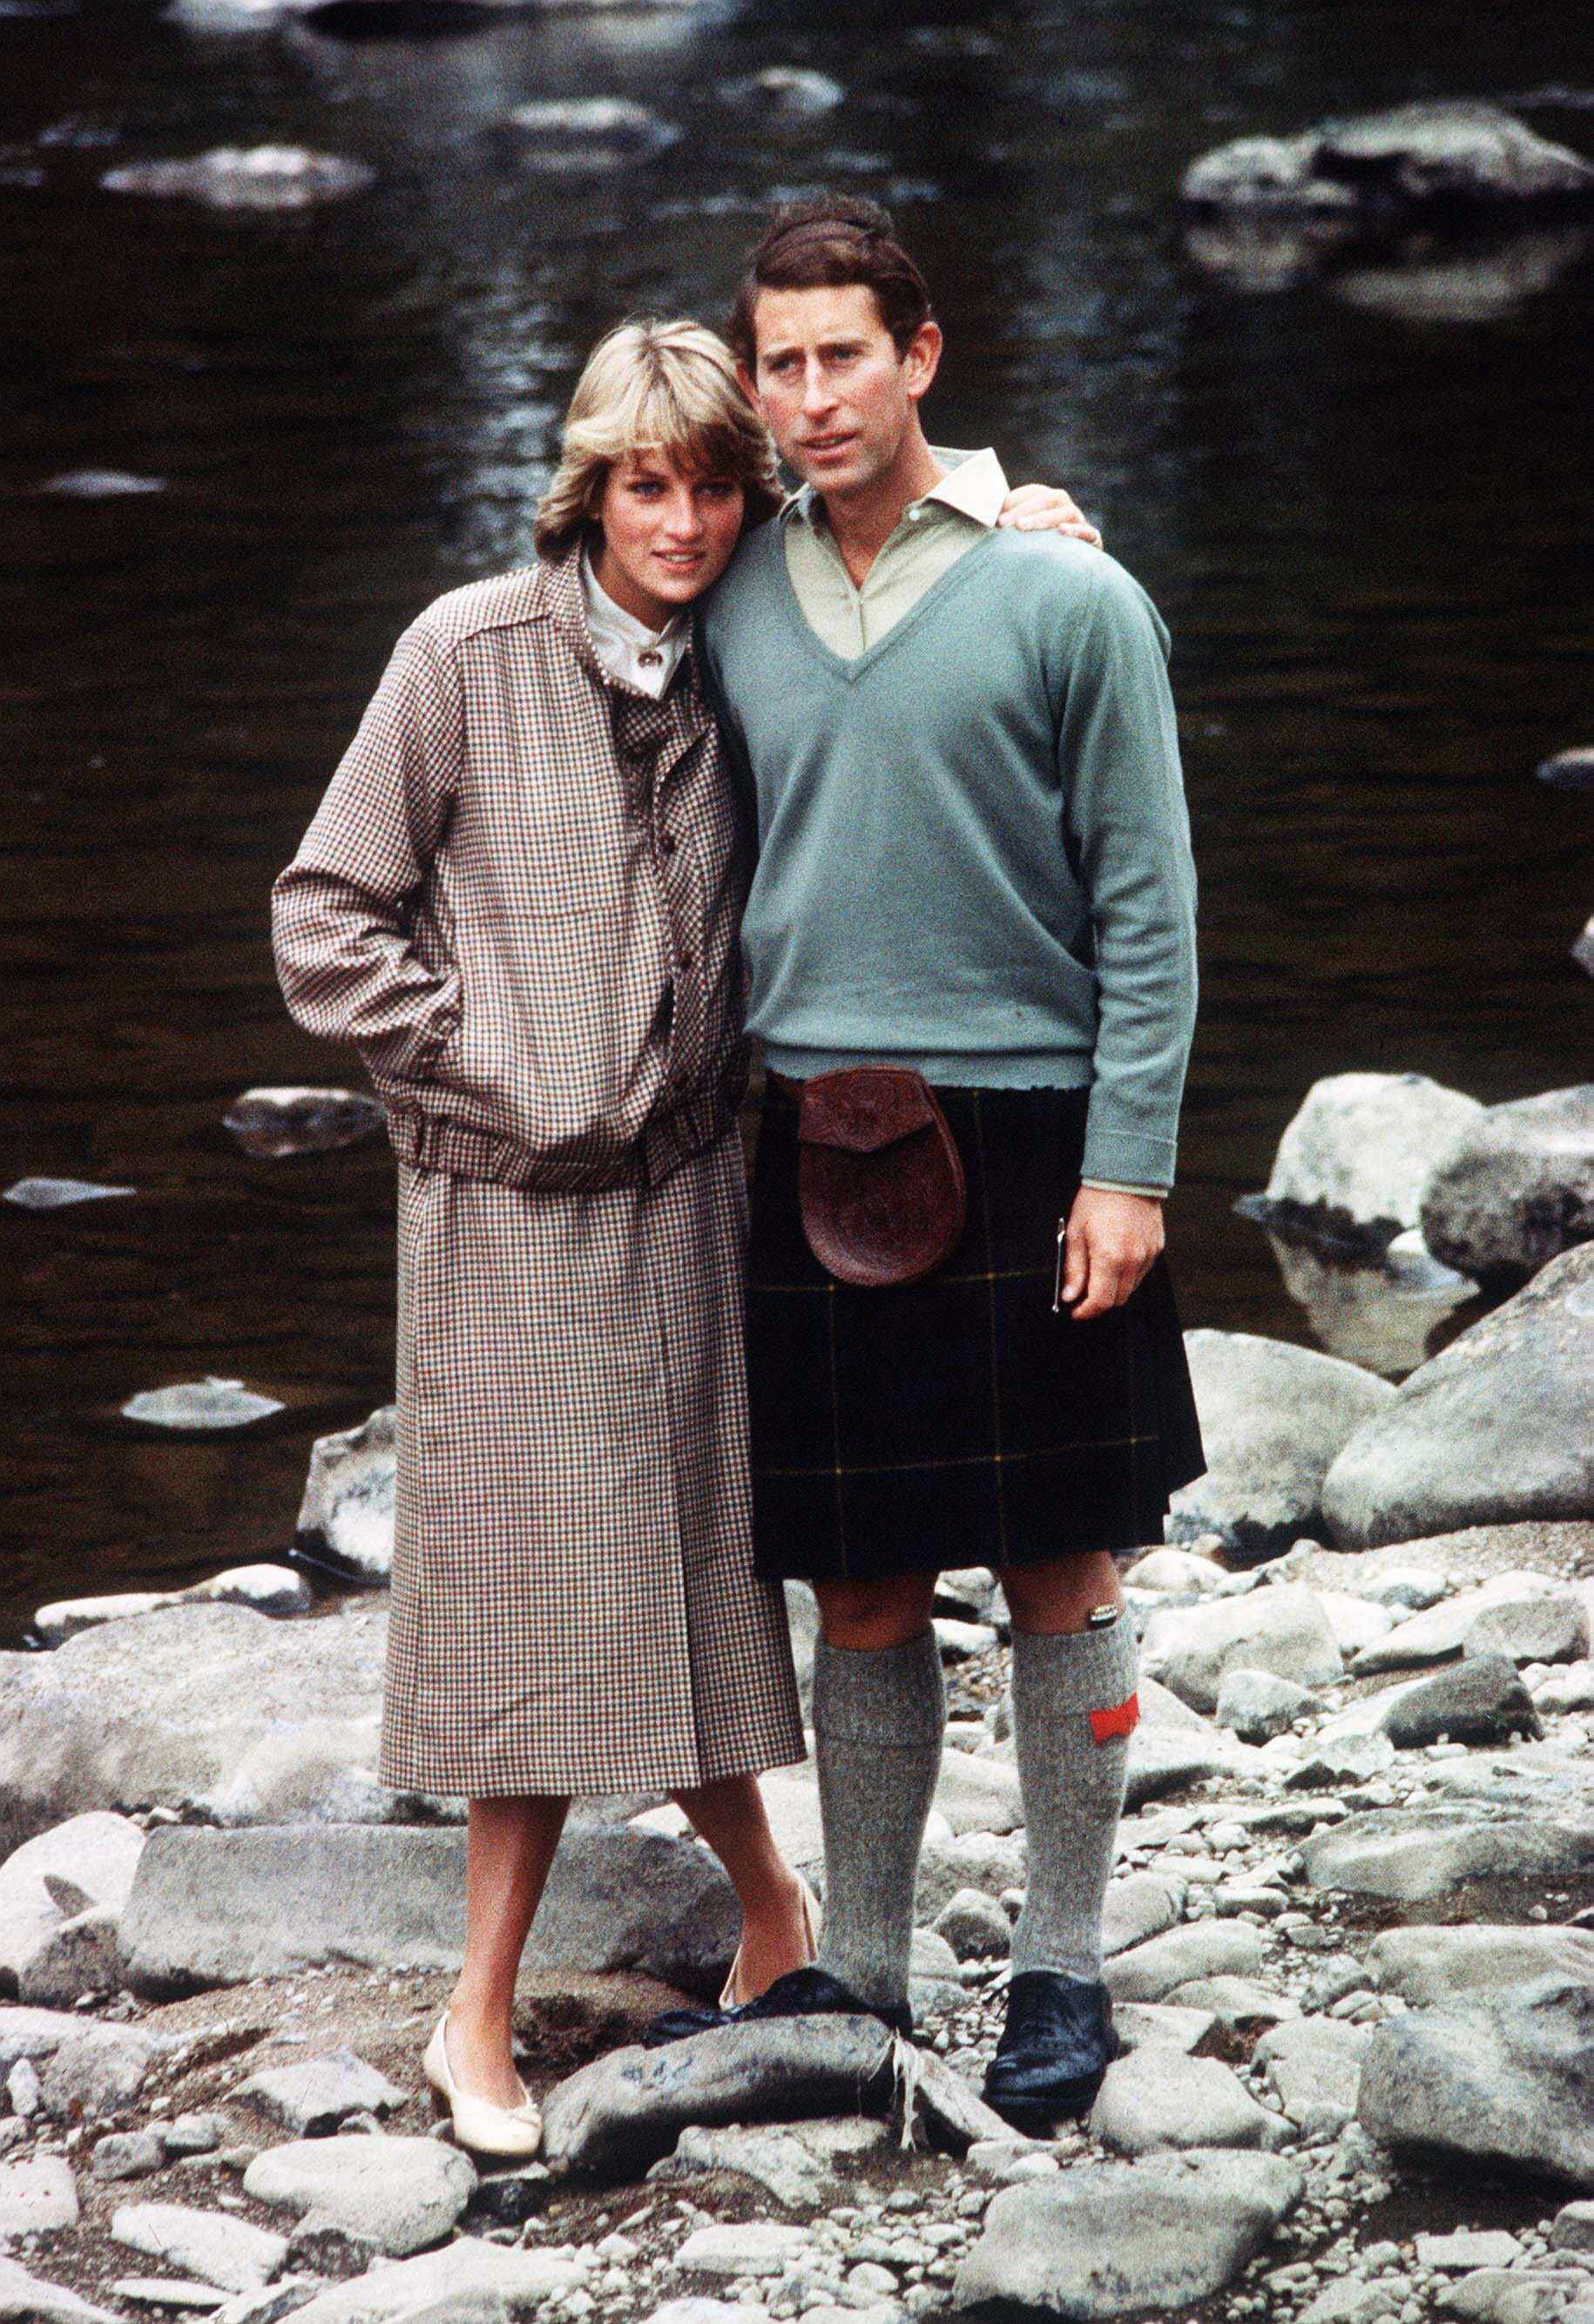 Prince Charles and Princess Diana pose for a photo on the banks of the river Dee in the grounds of Balmoral Castle during their honeymoon on August 19, 1981, in Balmoral, Scotland. | Source: Getty Images.